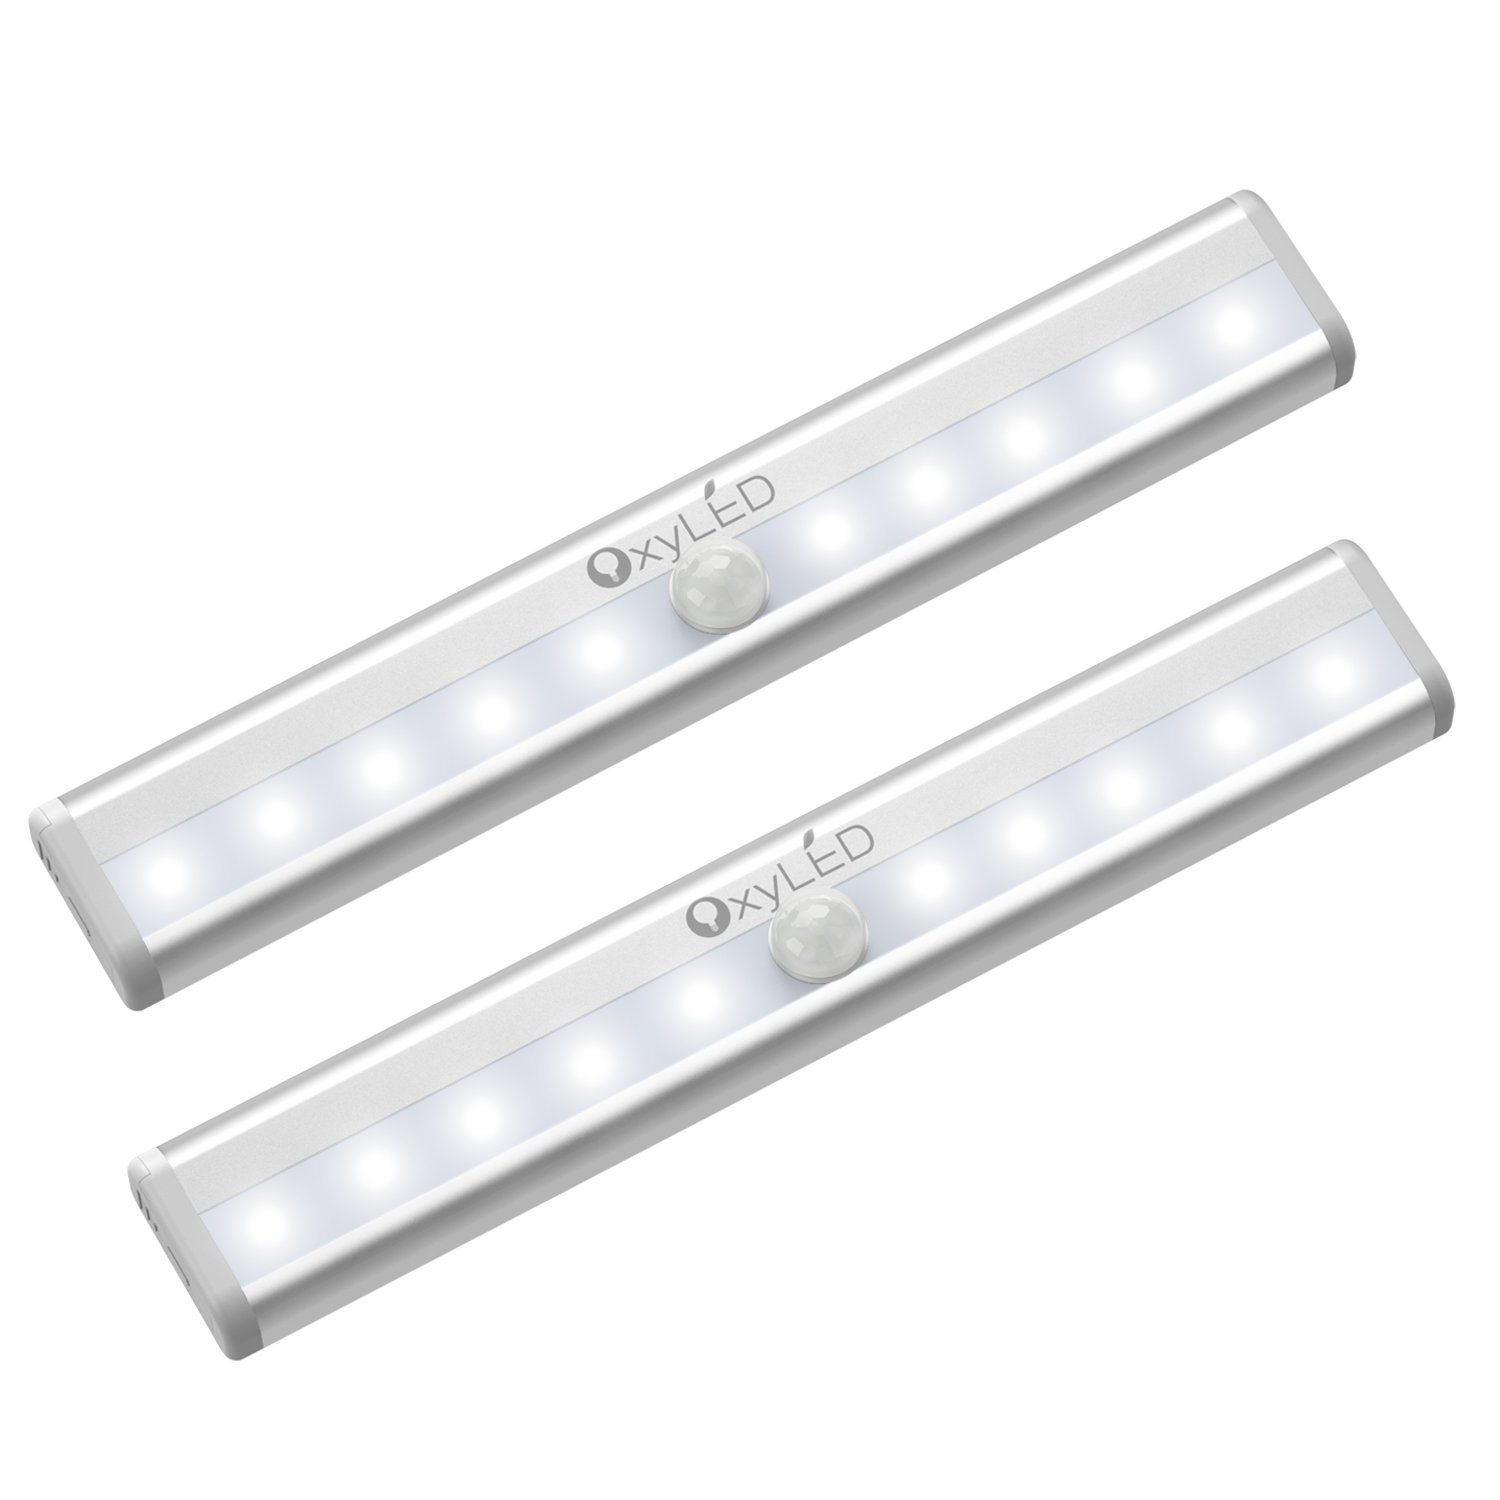 OxyLED Motion Sensor Lights, Cordless Closet Light Under Cabinet Lightening, Stick-on Wireless Wardrobe Light, Battery Operated 10 LED Night Light Bar, Safe Lights for Stairs, Bed, 2 Pack by OxyLED